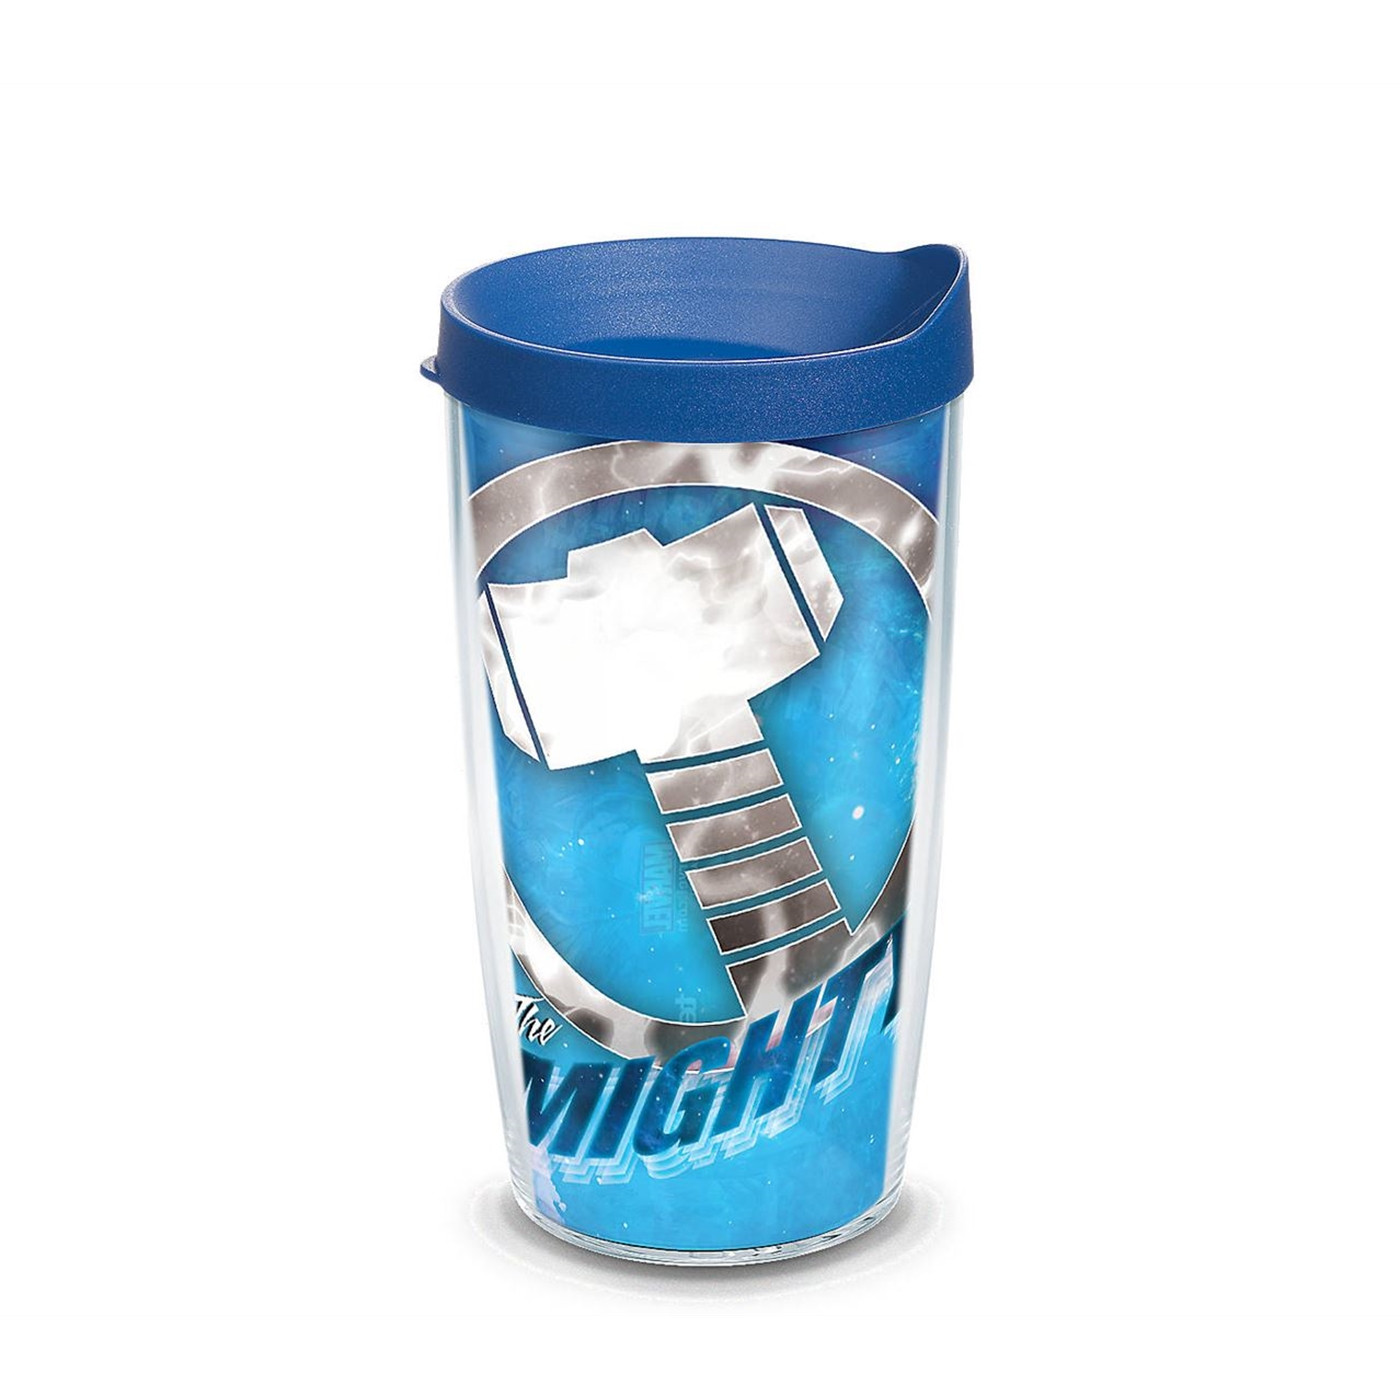 Thor Wrap Tumbler With Travel Lid 16 oz Tervis®